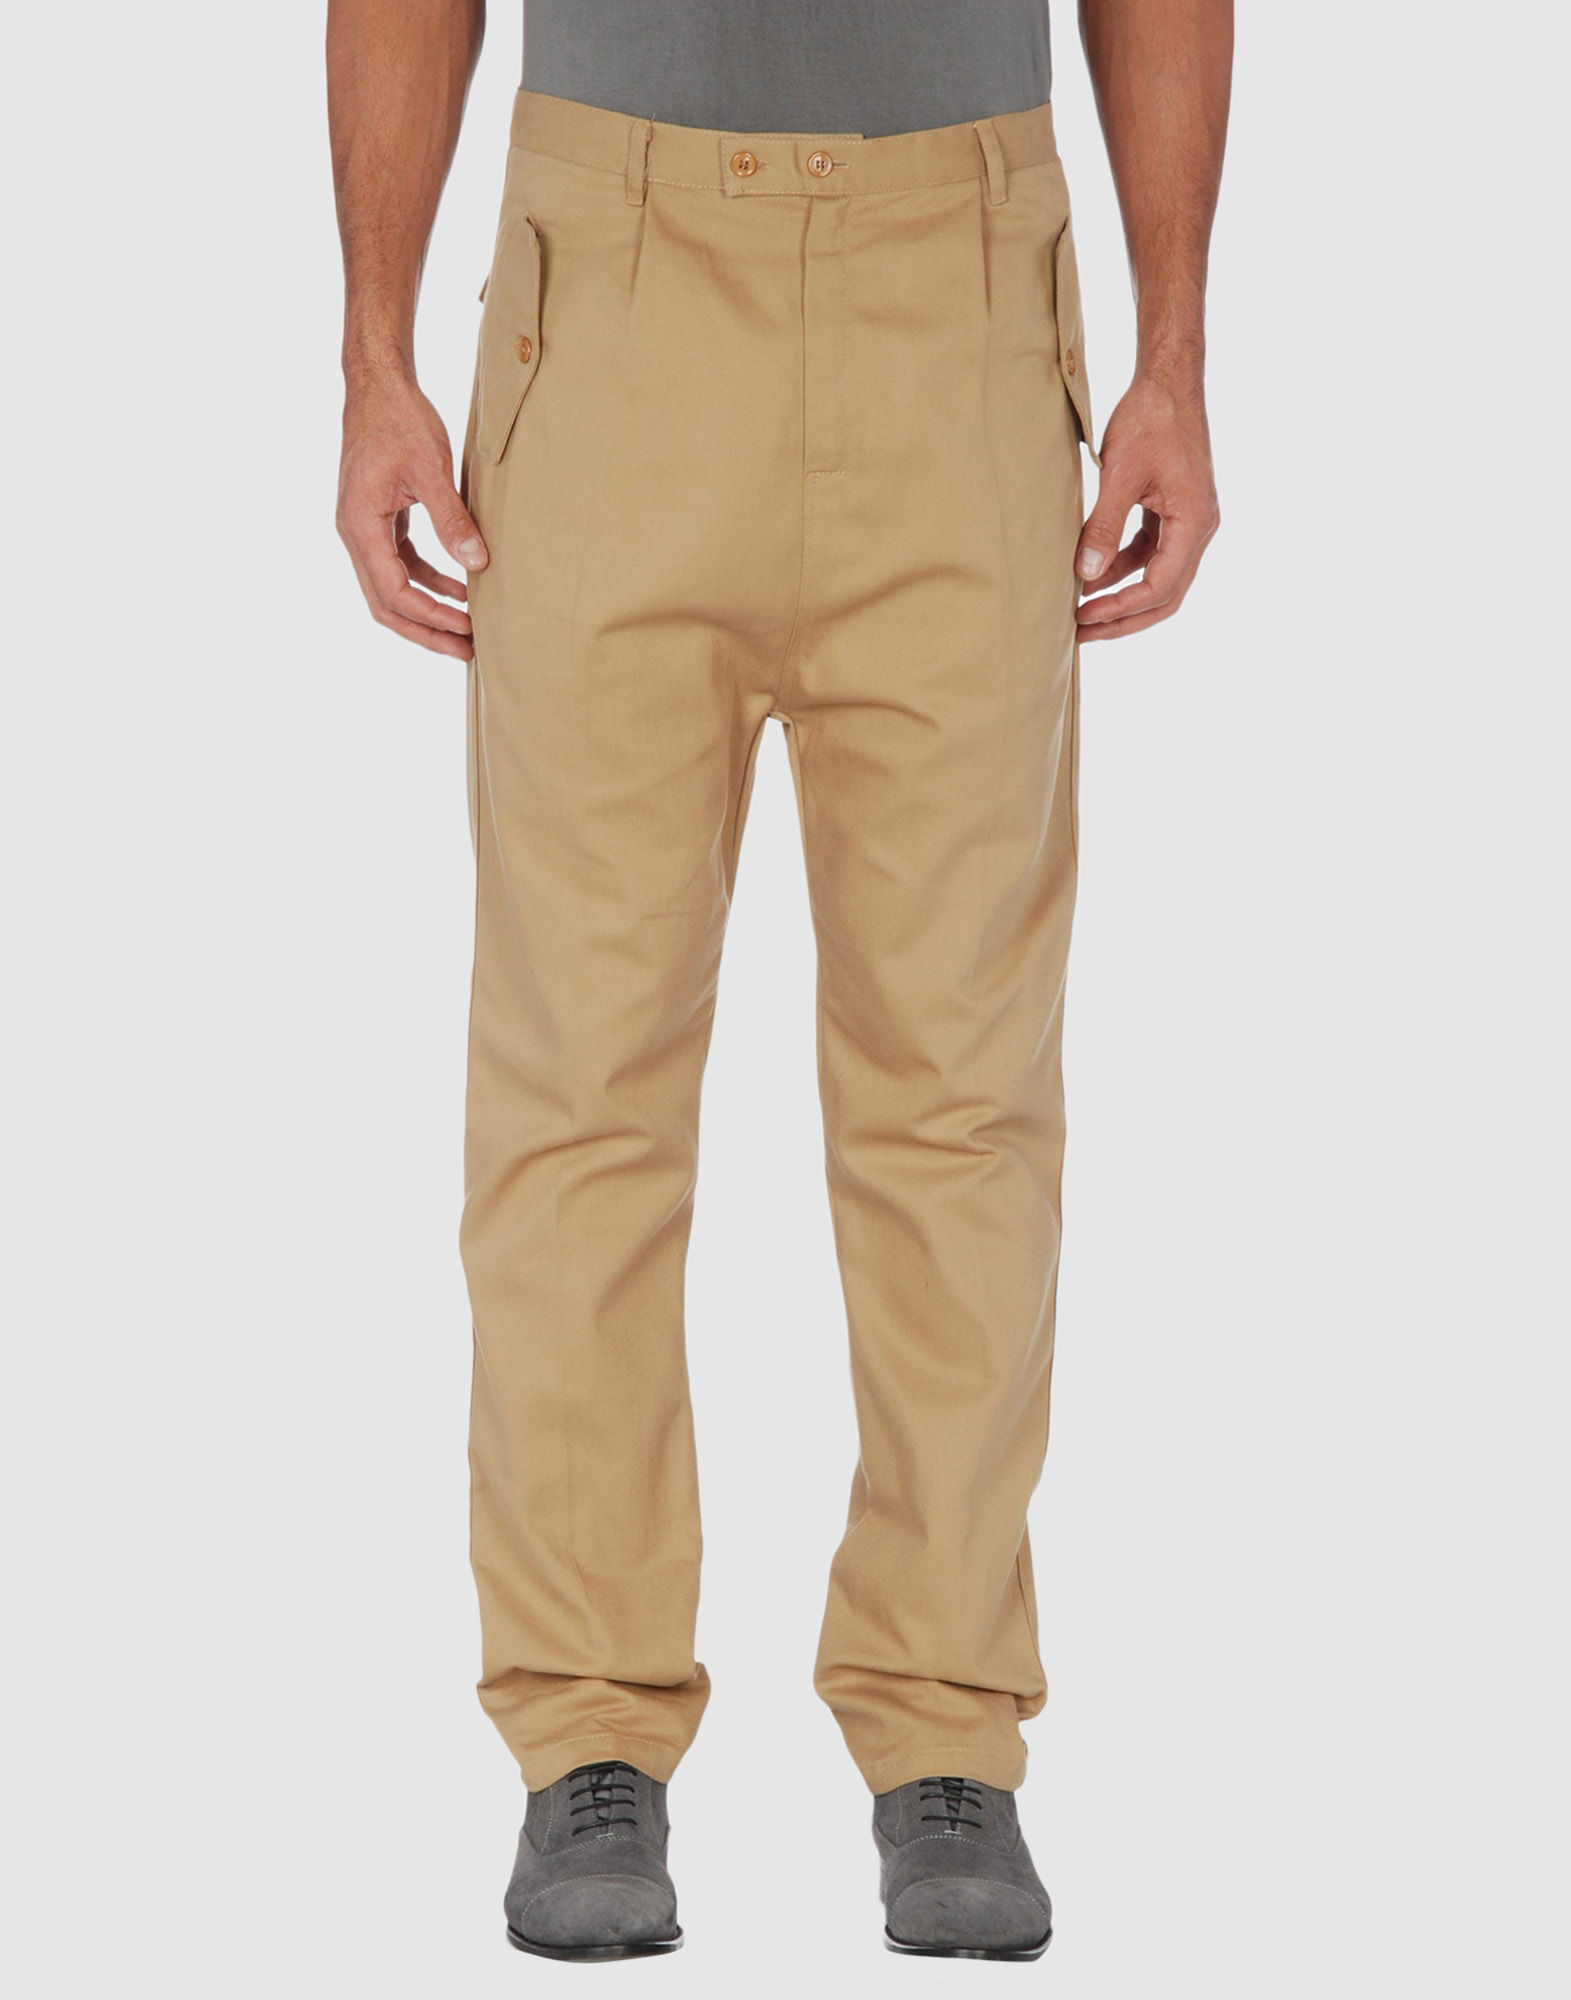 Free shipping on men's casual pants at sportworlds.gq Shop chinos, cargos & twill pants from the best brands. Totally free shipping & returns.